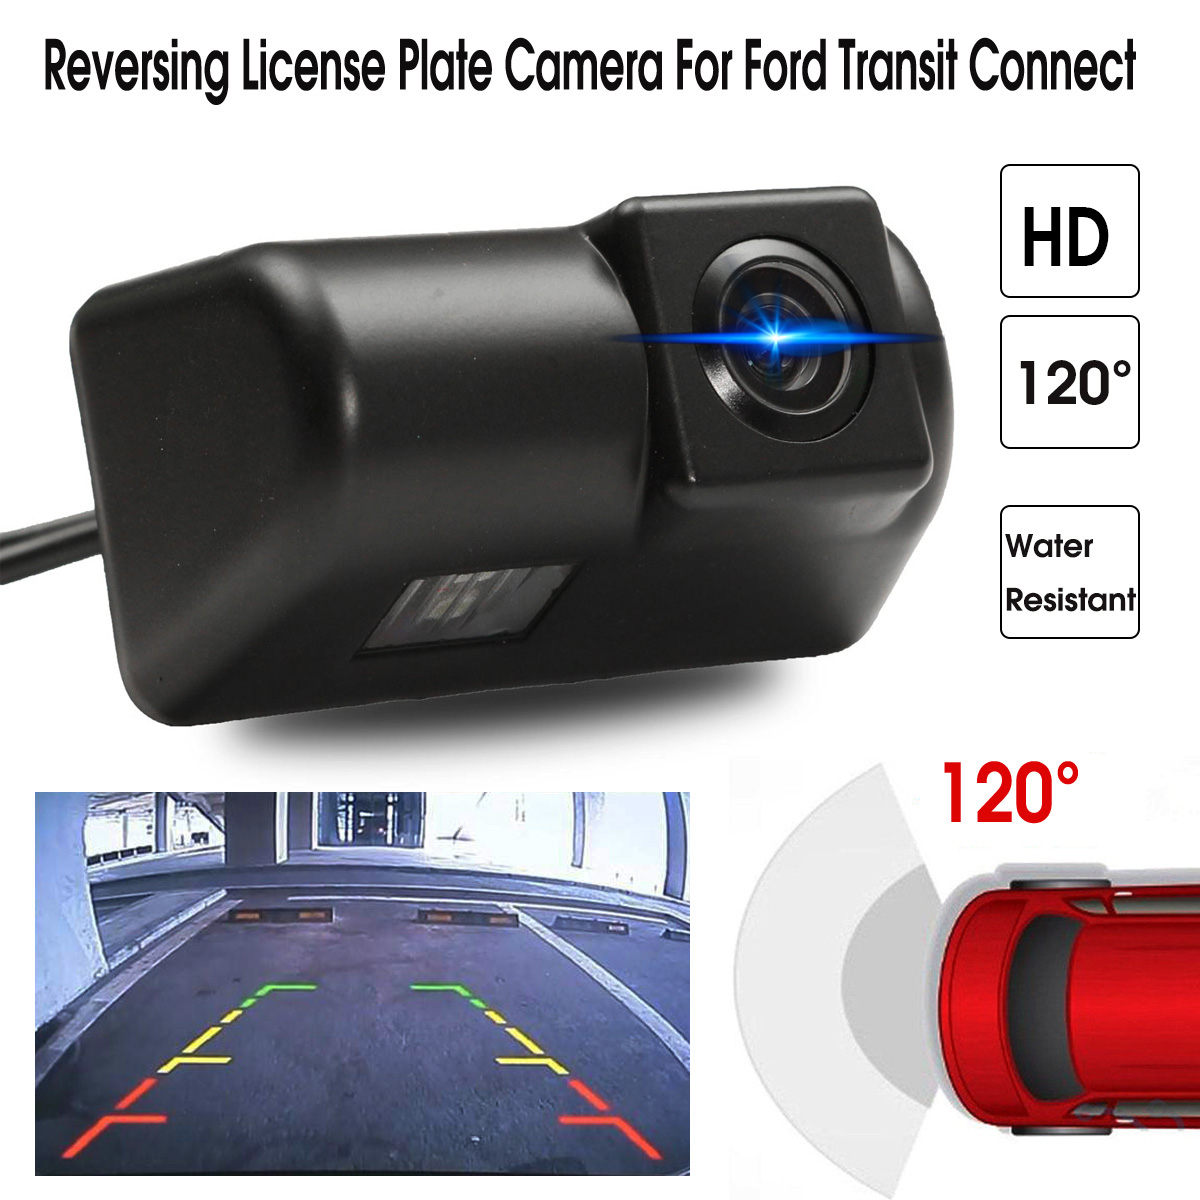 HD CCD Auto Car Rear View Camera Reverse Backup Parking Night Vision Waterproof Accessories For Ford Transit Connect